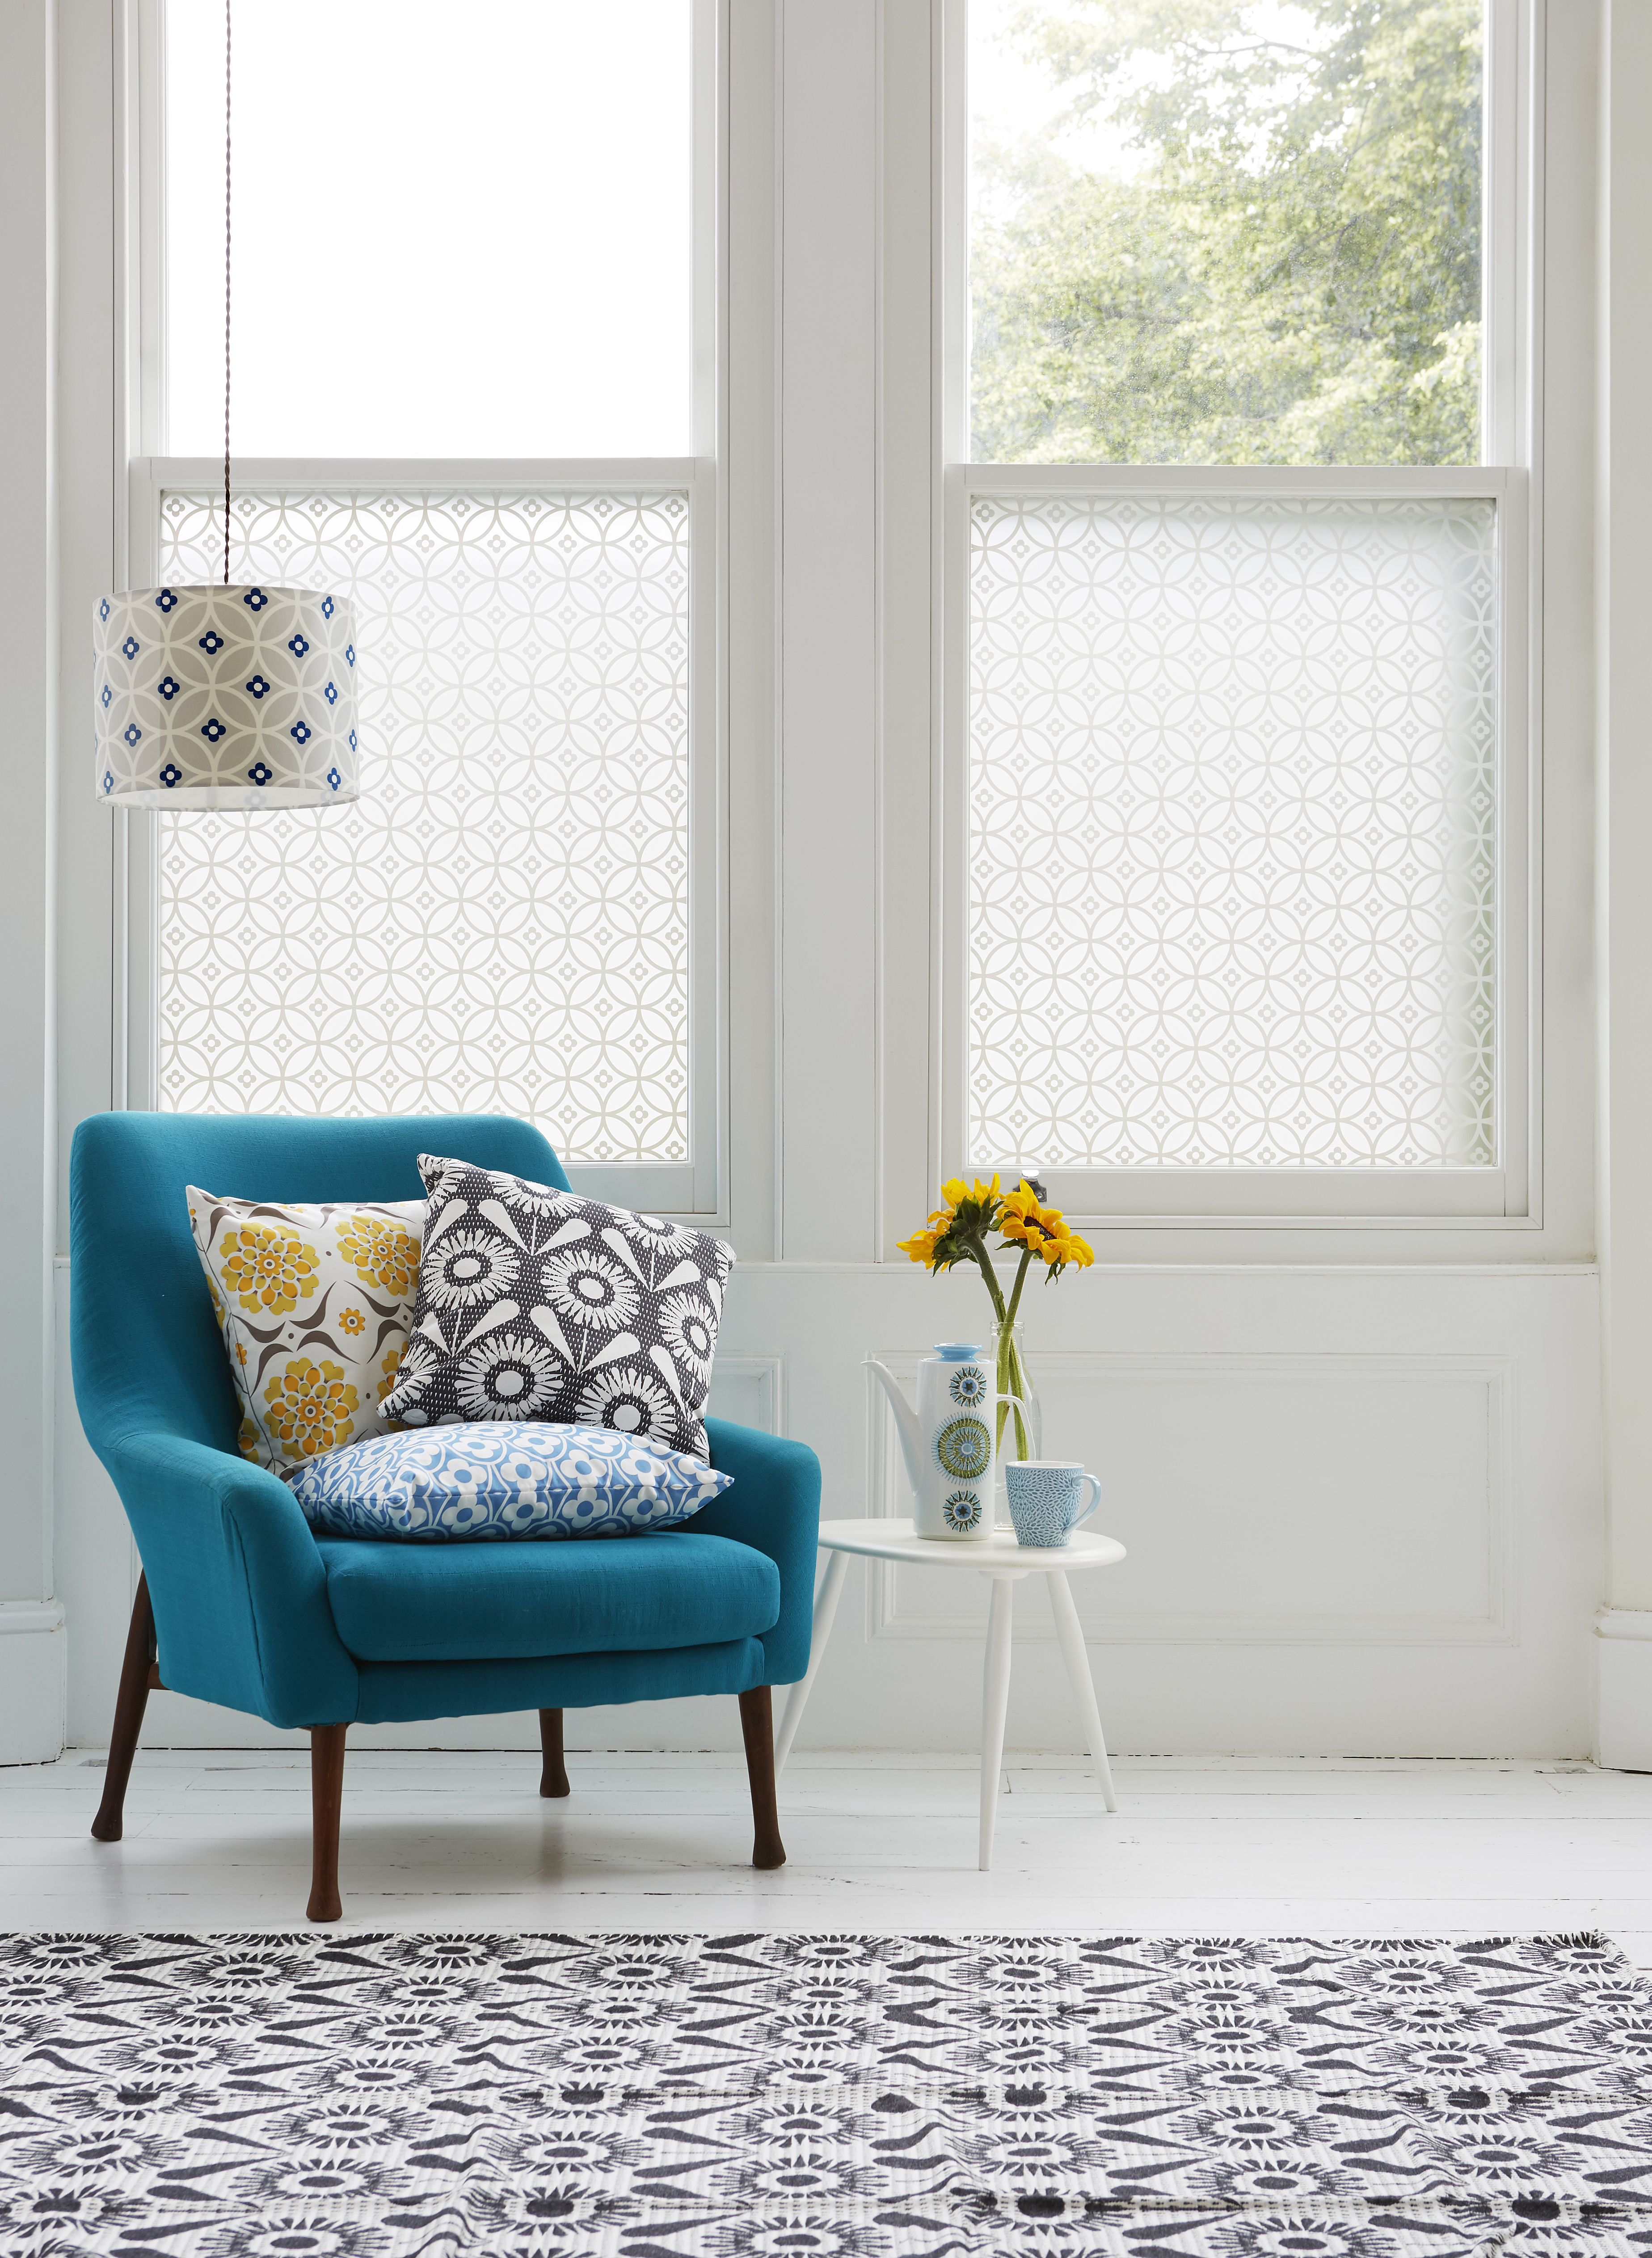 Daisy Chain By Layla Faye For The Window Film Company This Wonderful Pattern